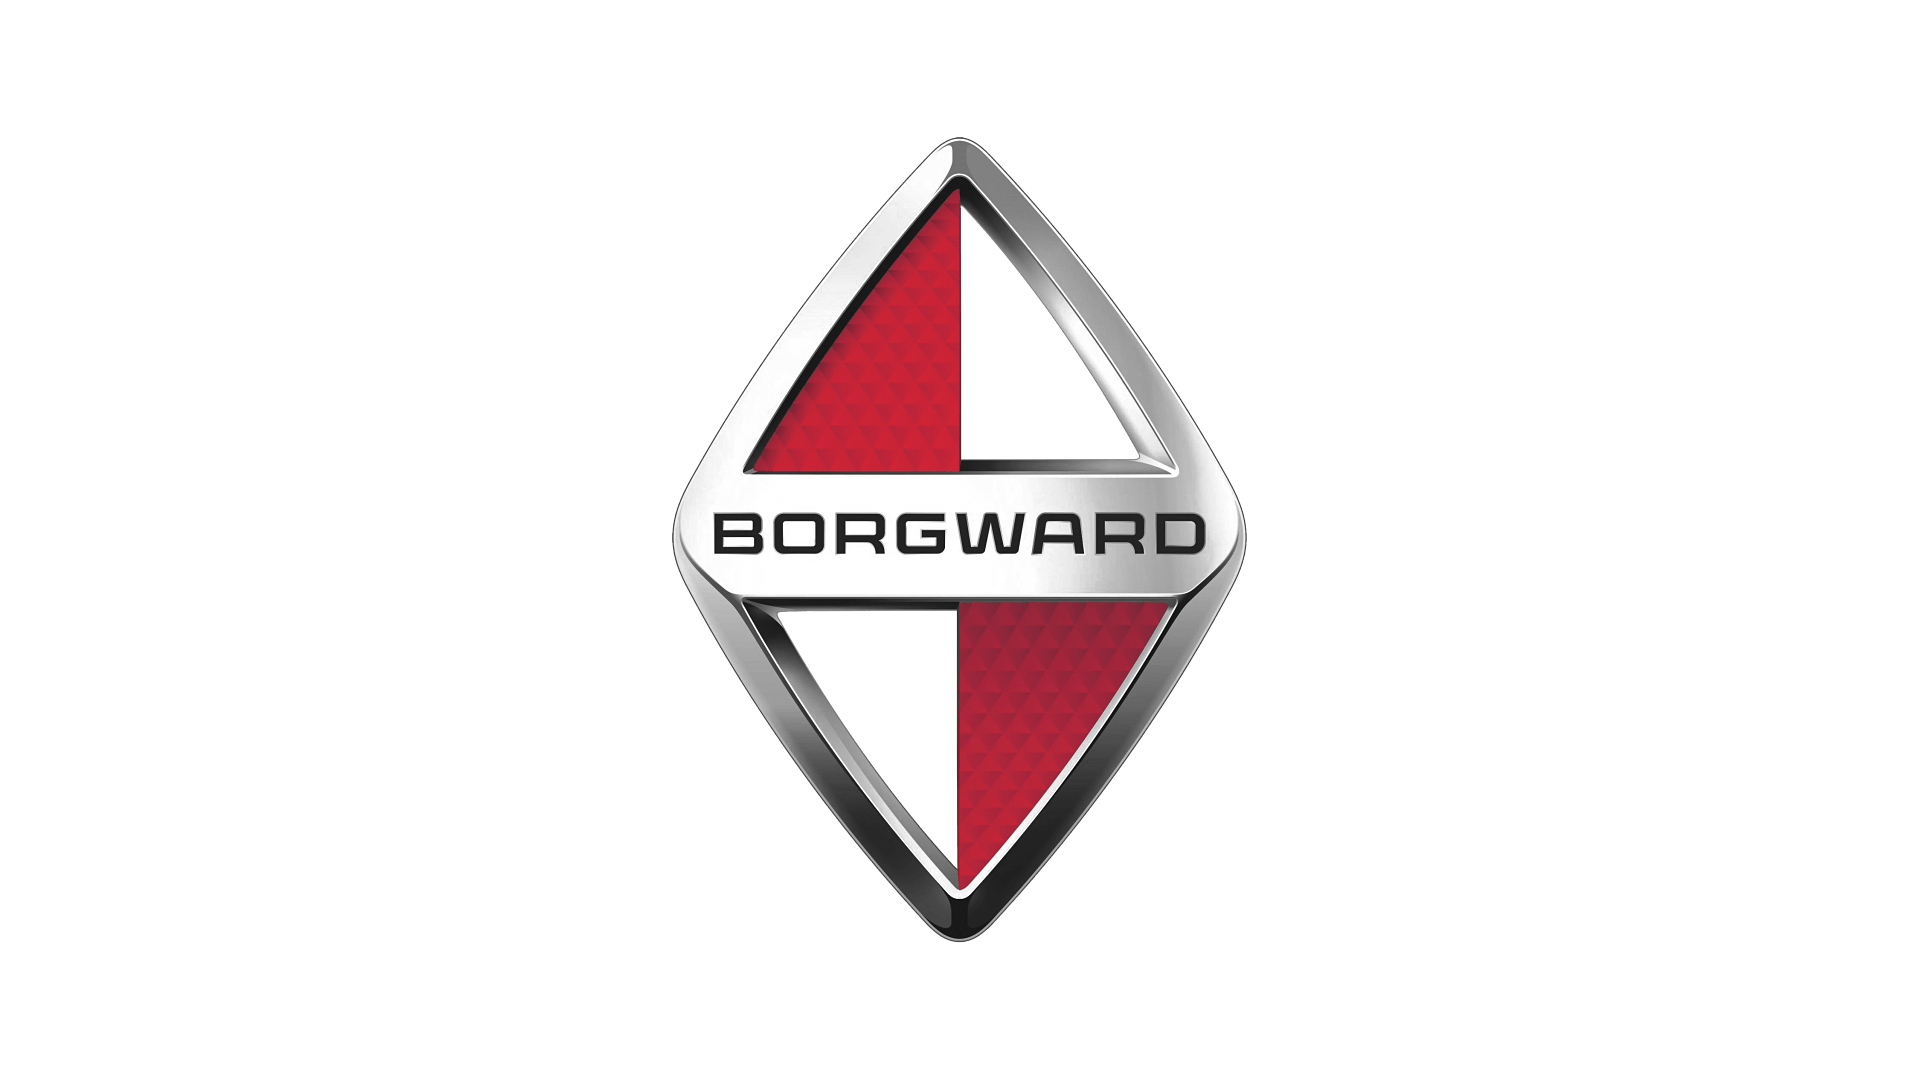 Car Logo Borgward - Car Logo PNG